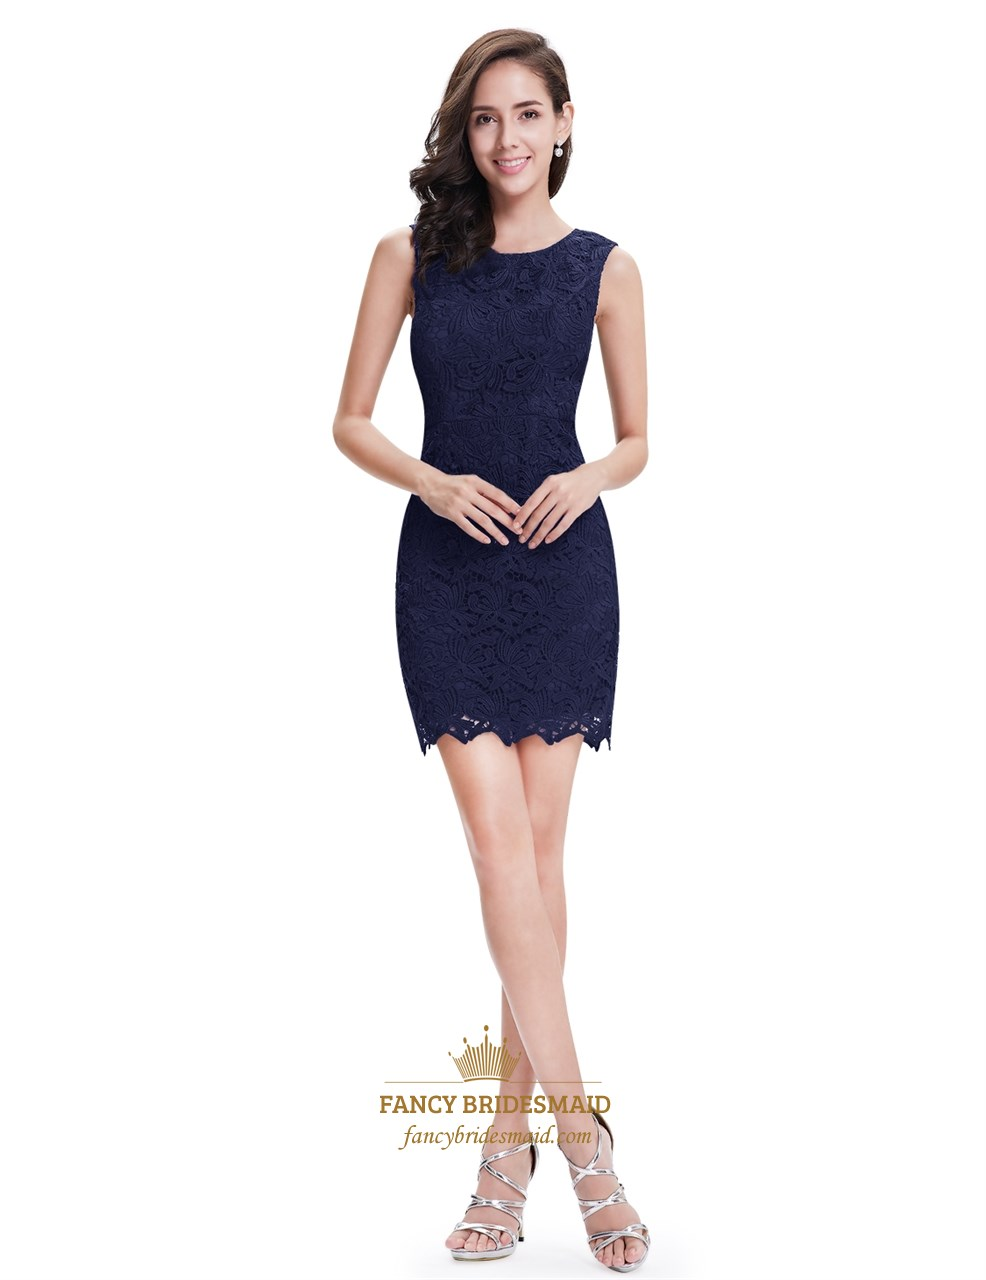 42793abcd2b0 Elegant Simple Navy Blue Sleeveless Short Sheath Lace Cocktail Dress SKU  -FC1286